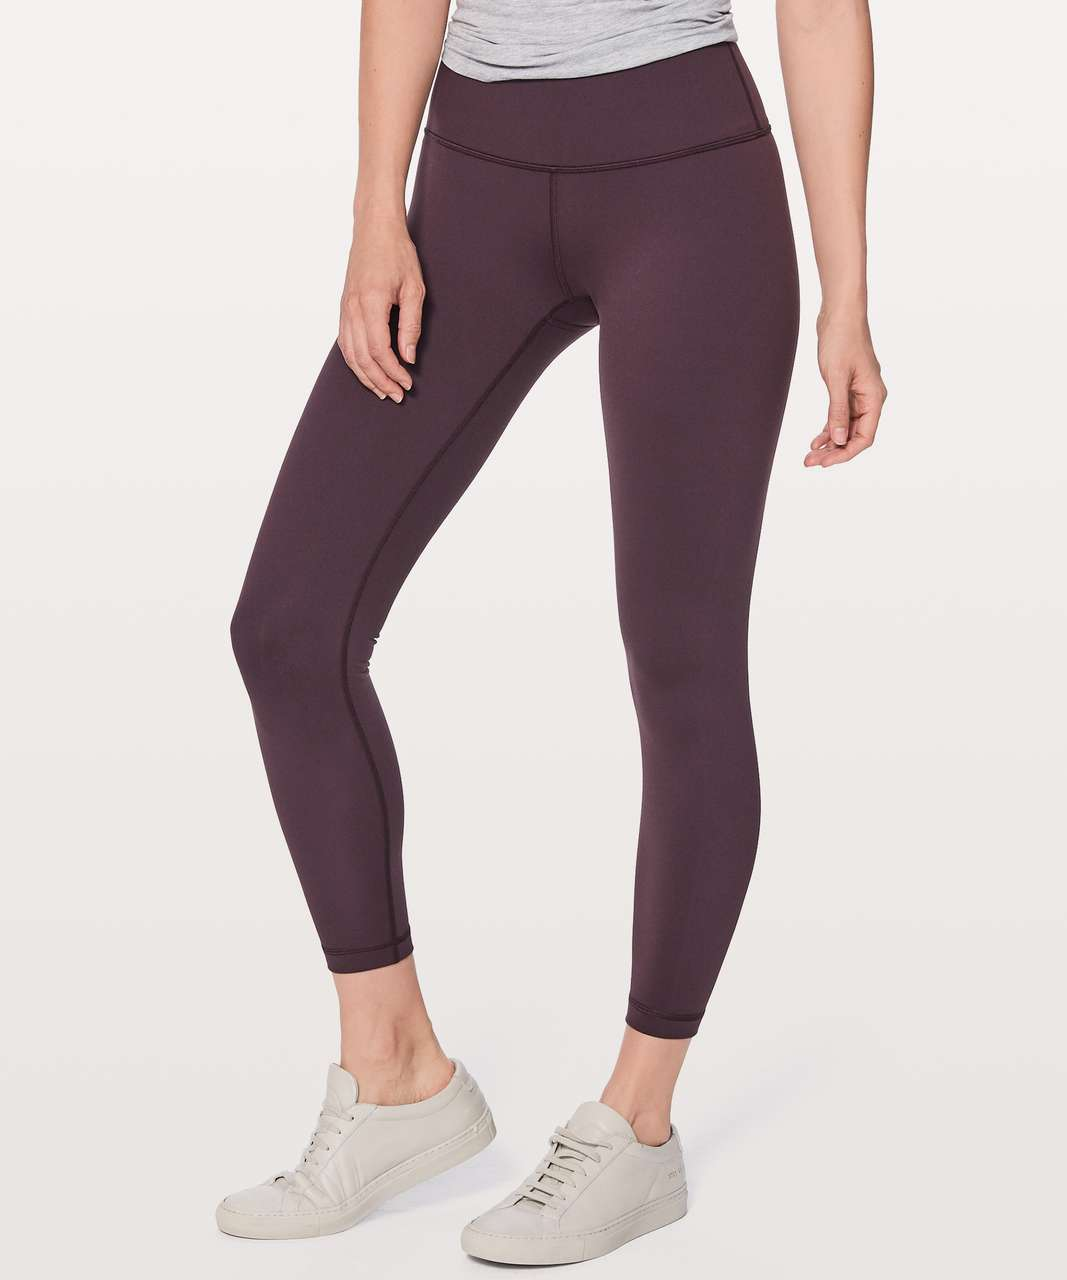 "Lululemon Wunder Under Hi-Rise 7/8 Tight Full-On Luon 25"" - Black Cherry"